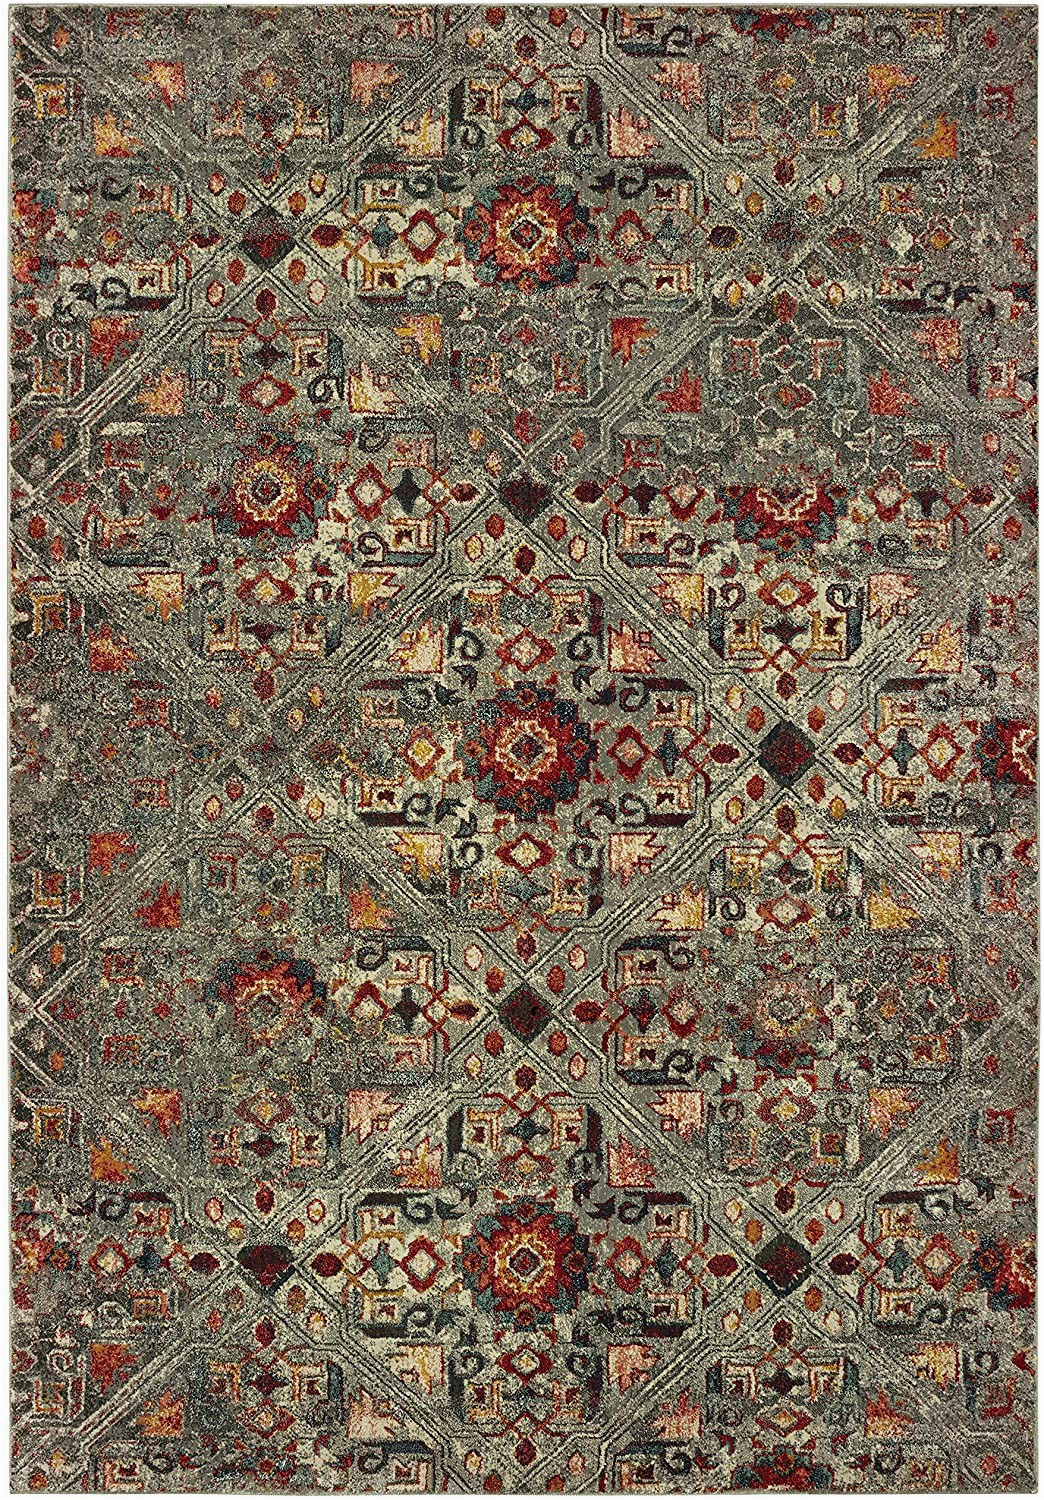 9 Ft X 12 Ft area Rug Amazon Christopher Knight Home Murrieta Abstract